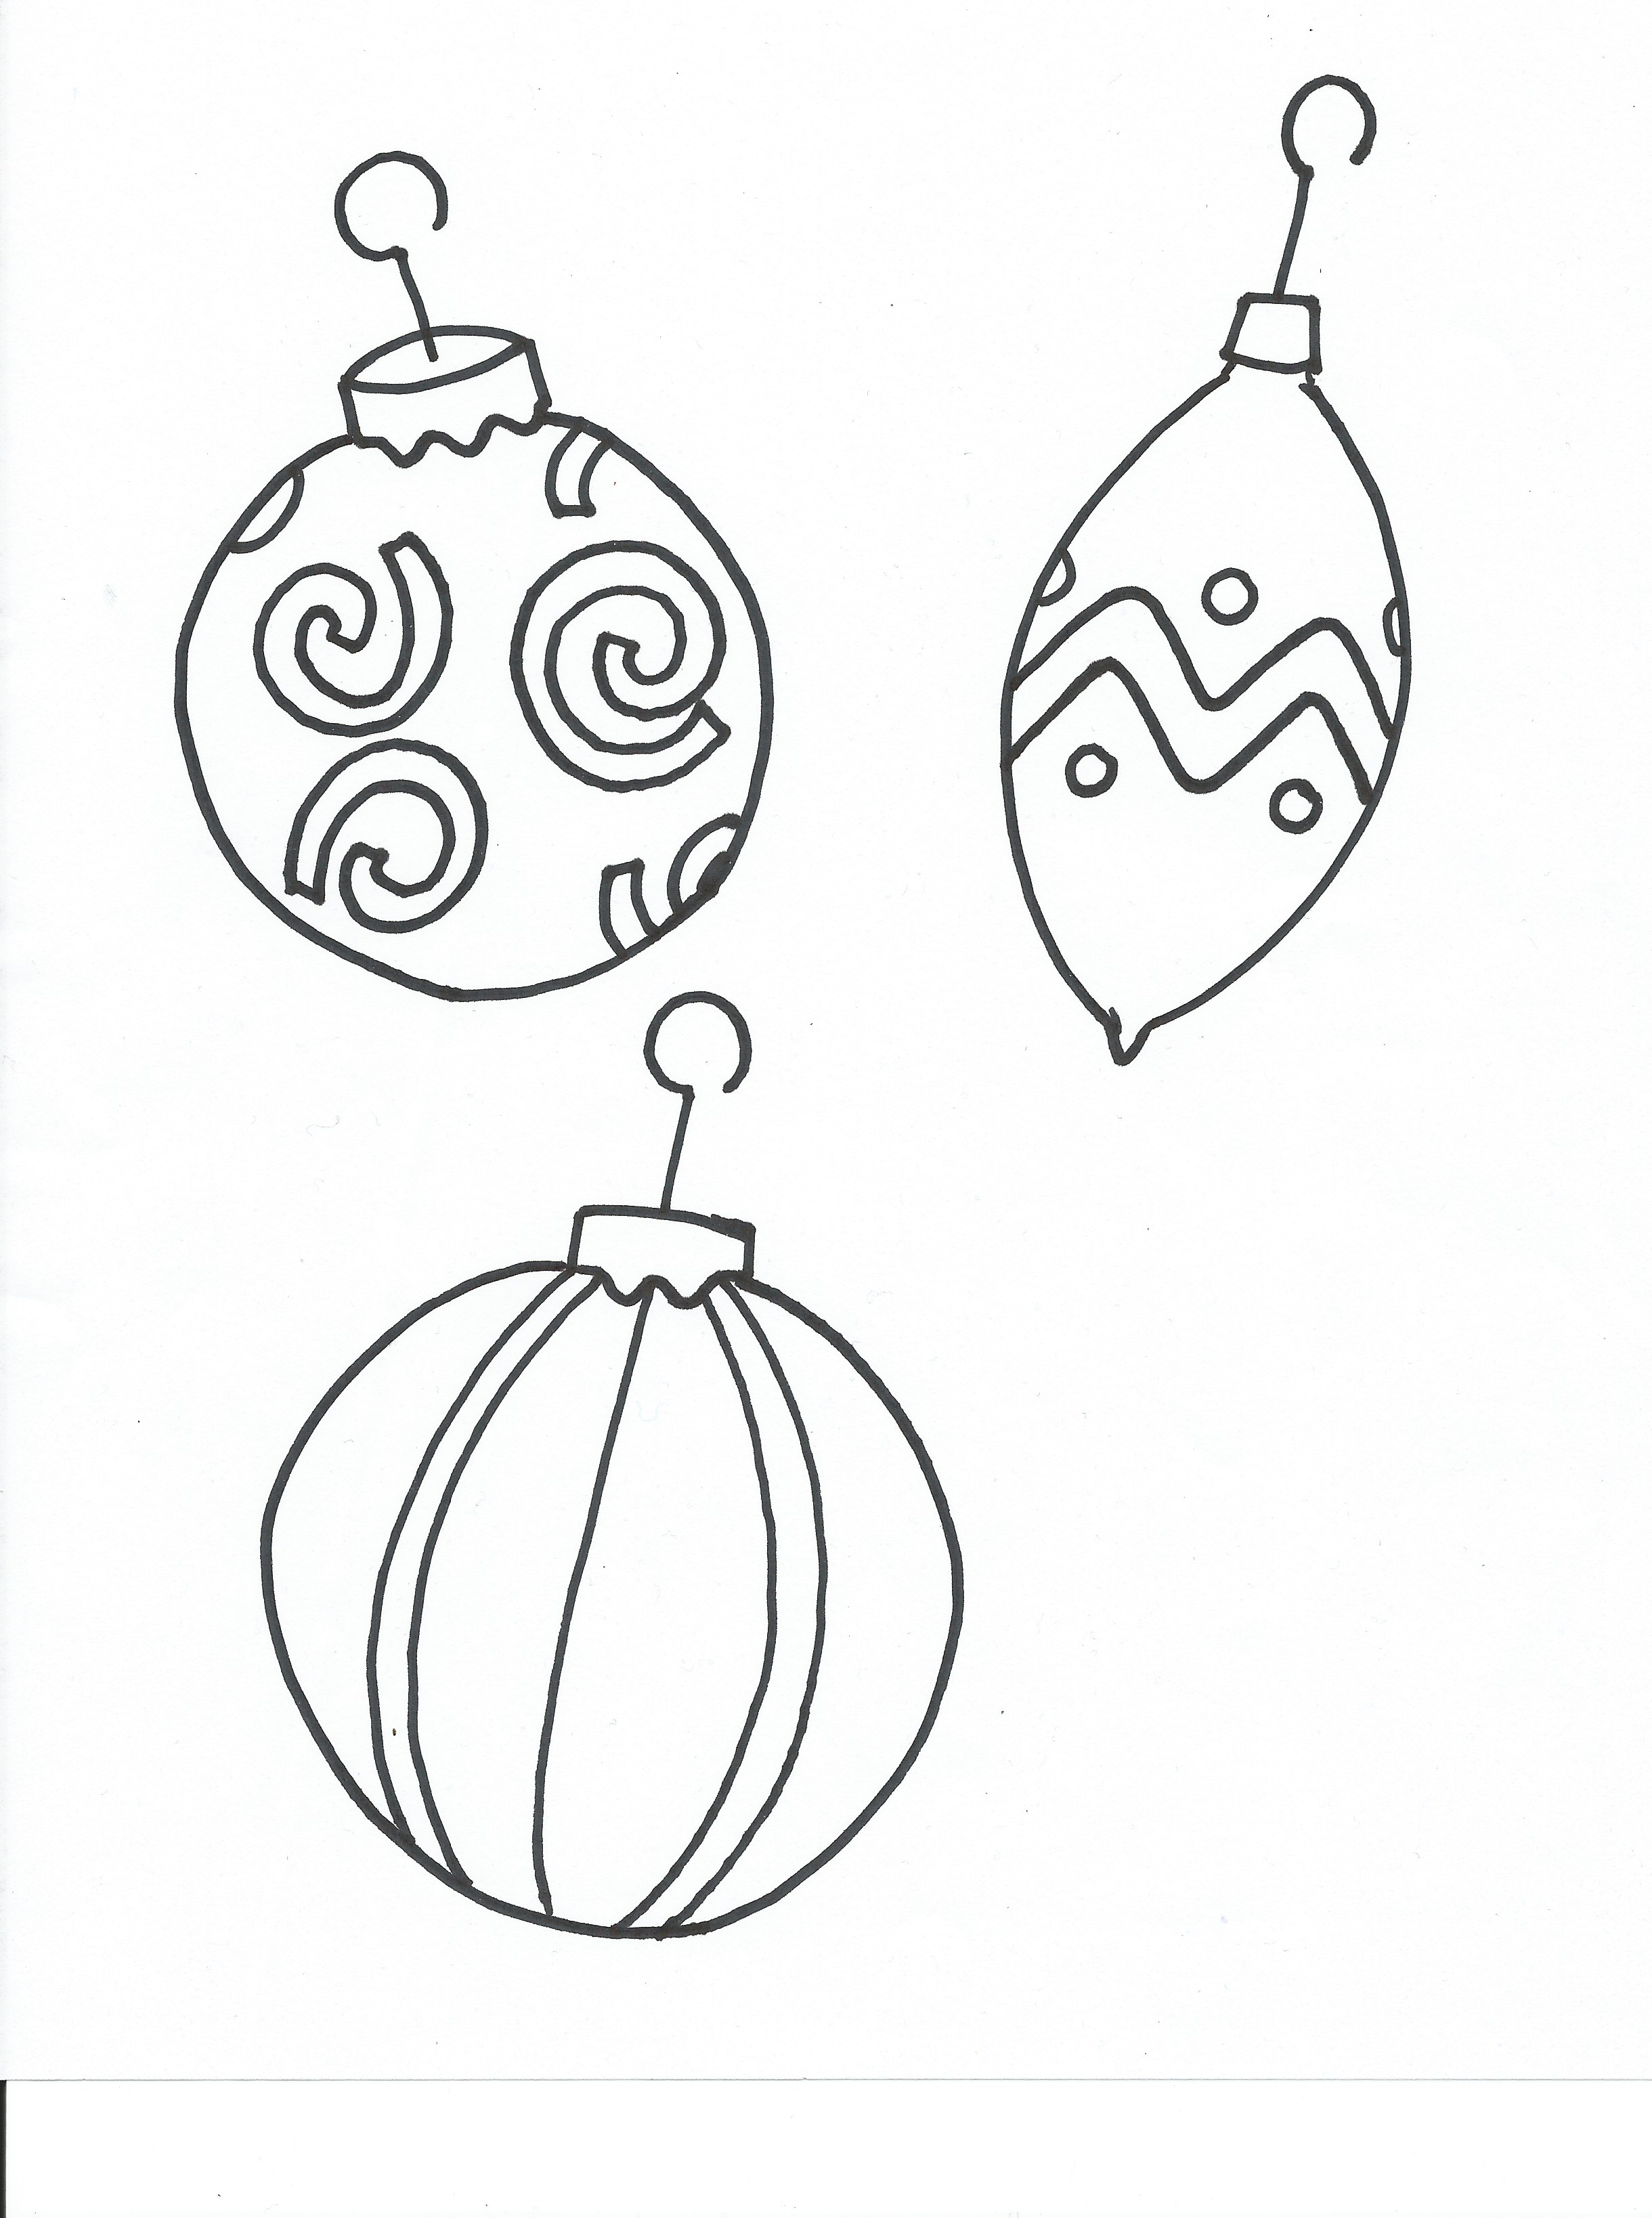 Drawn ornamental printable coloring Coloring Ornaments Pages Coloring Free